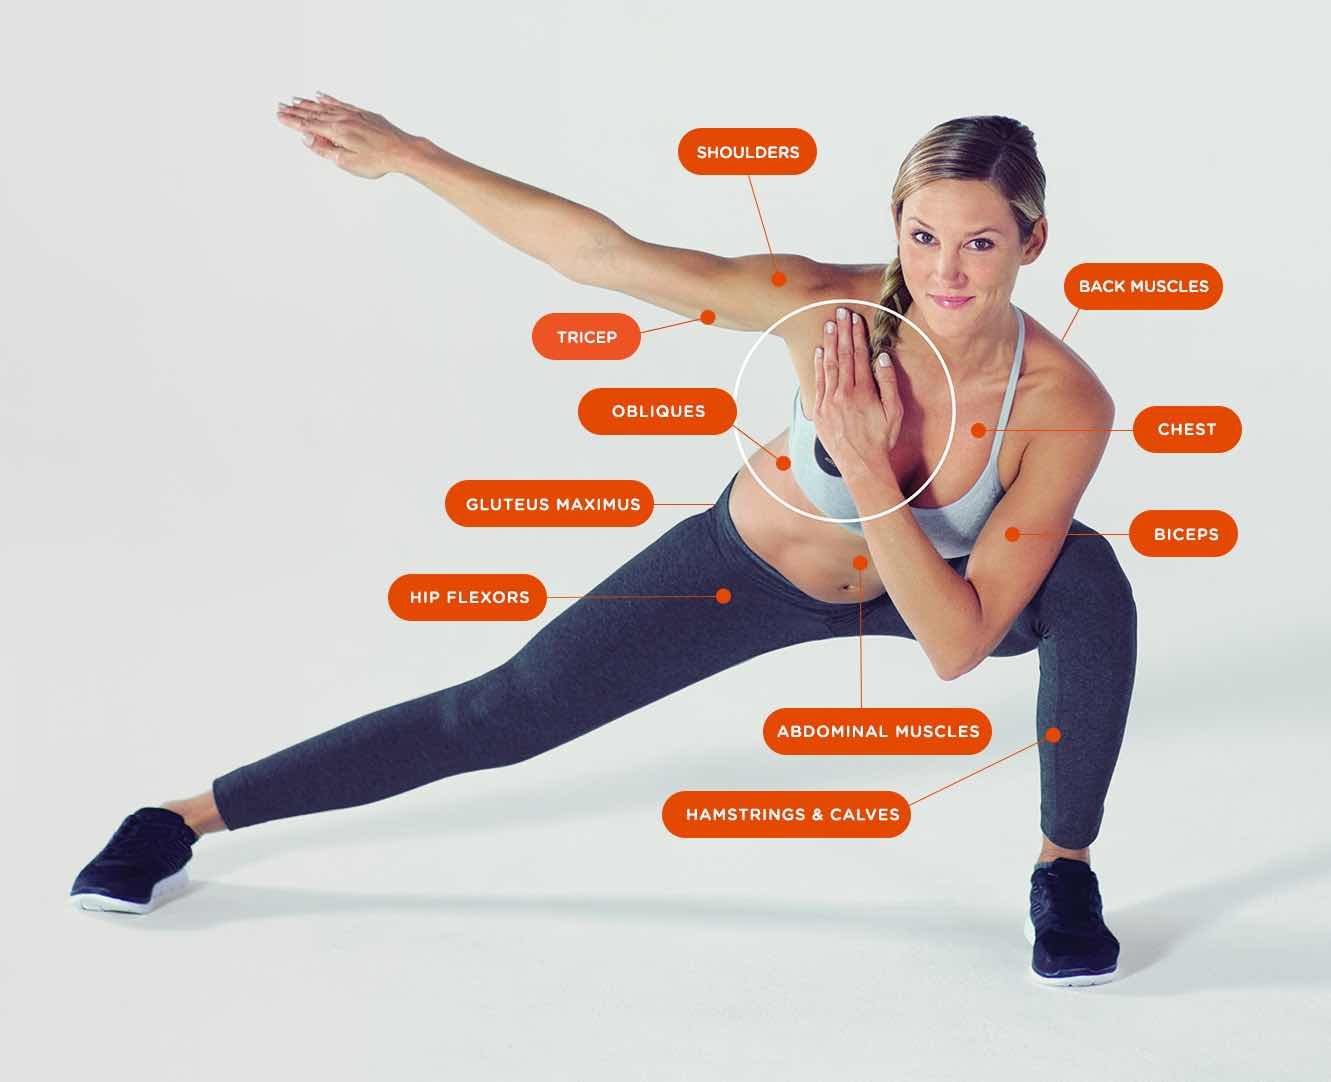 Areas Activ5 can help strengthen